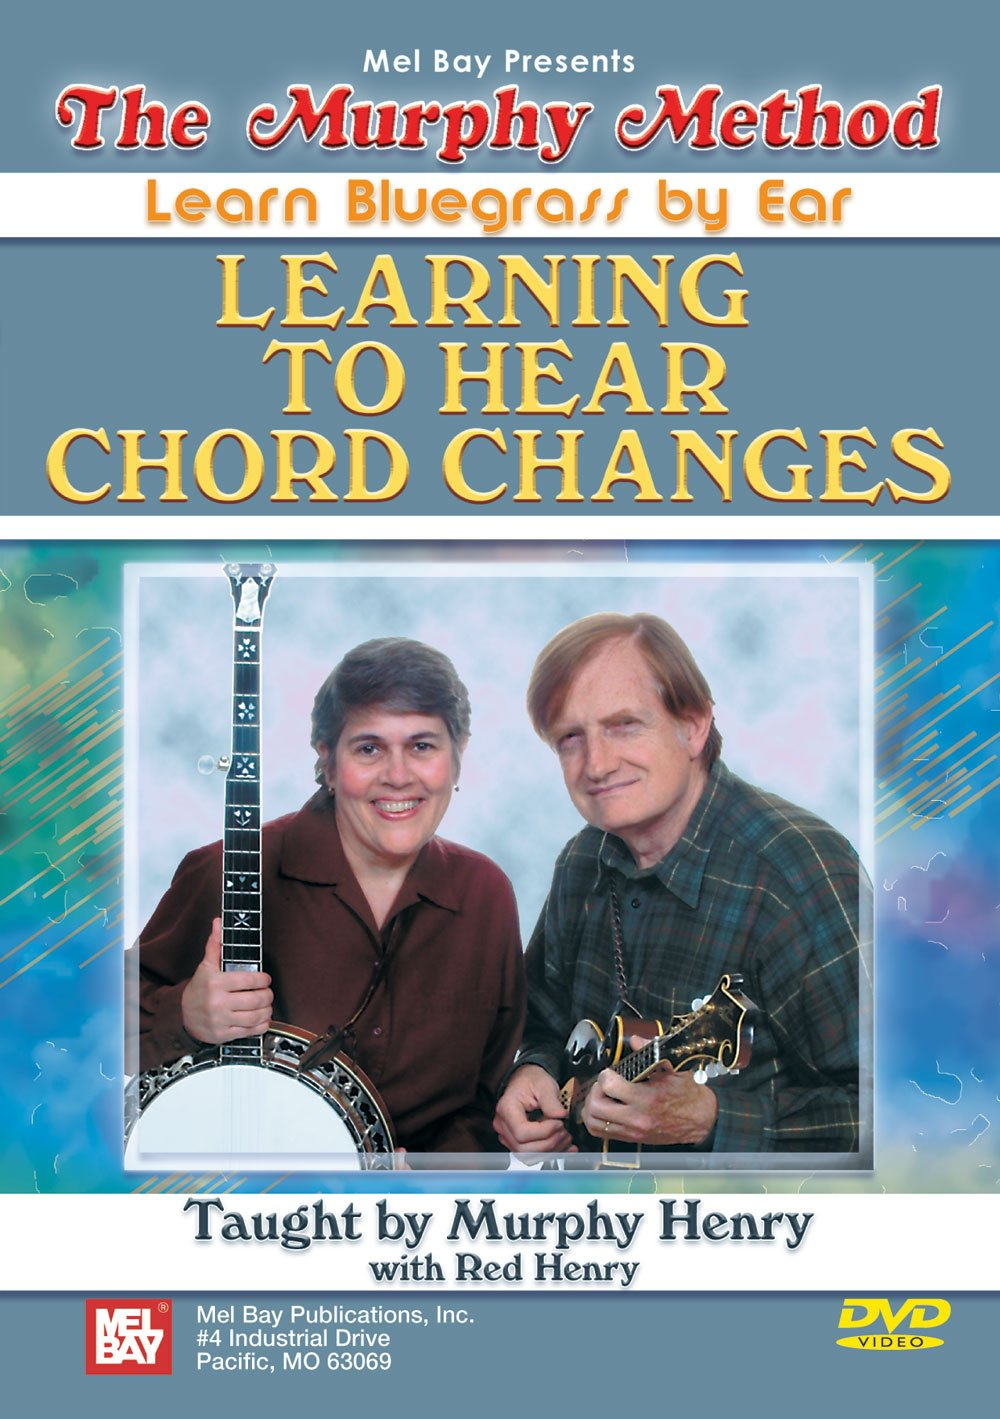 Learning to Hear Chord Changes Learn Bluegrass by Ear by Mel Bay